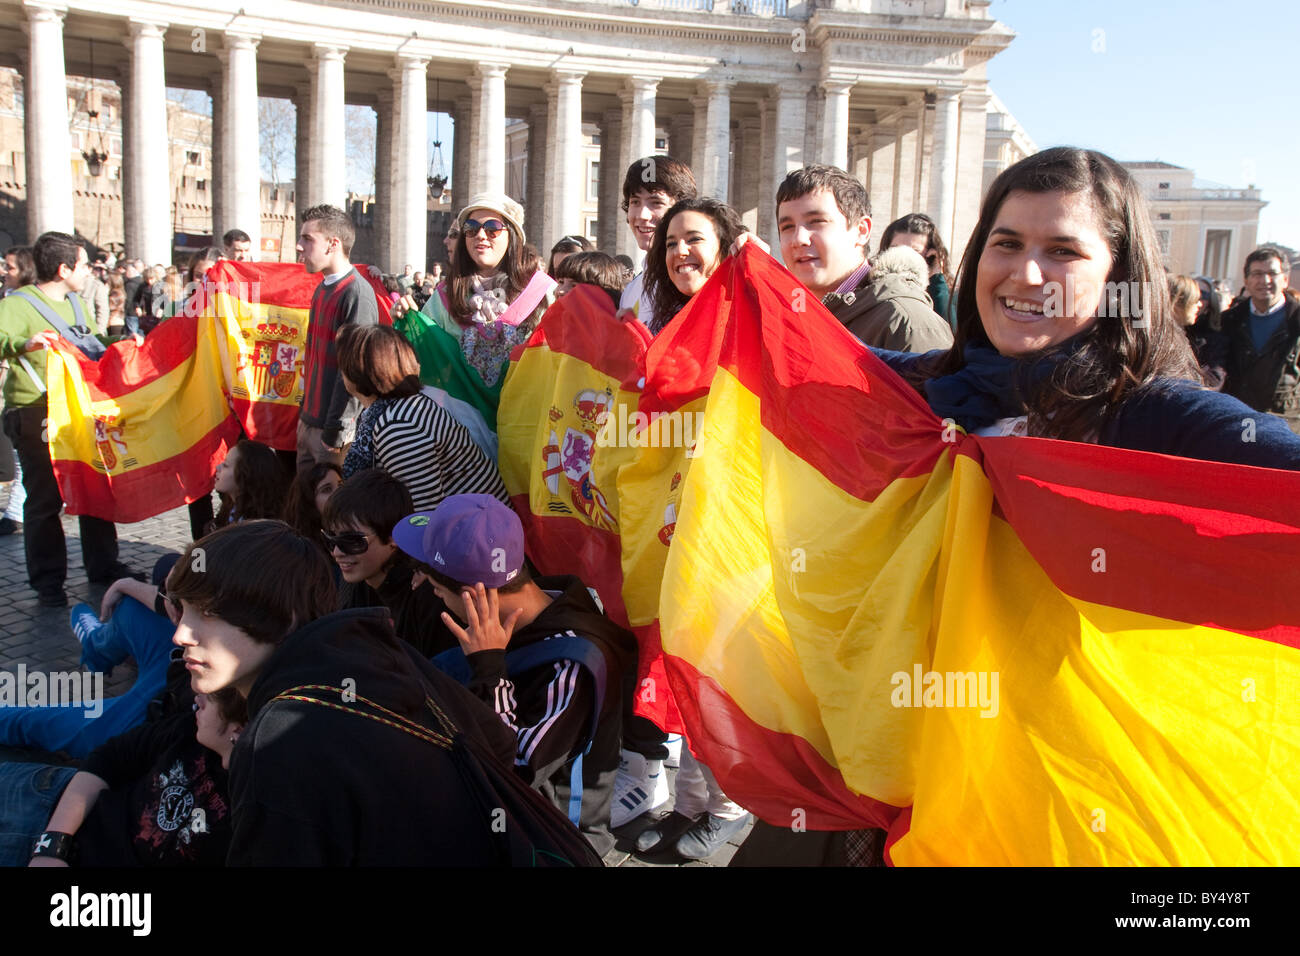 """people crowd for """"Migrant day"""" migrant celebration in Vatican St Peter's square Spanish flag people community Stock Photo"""